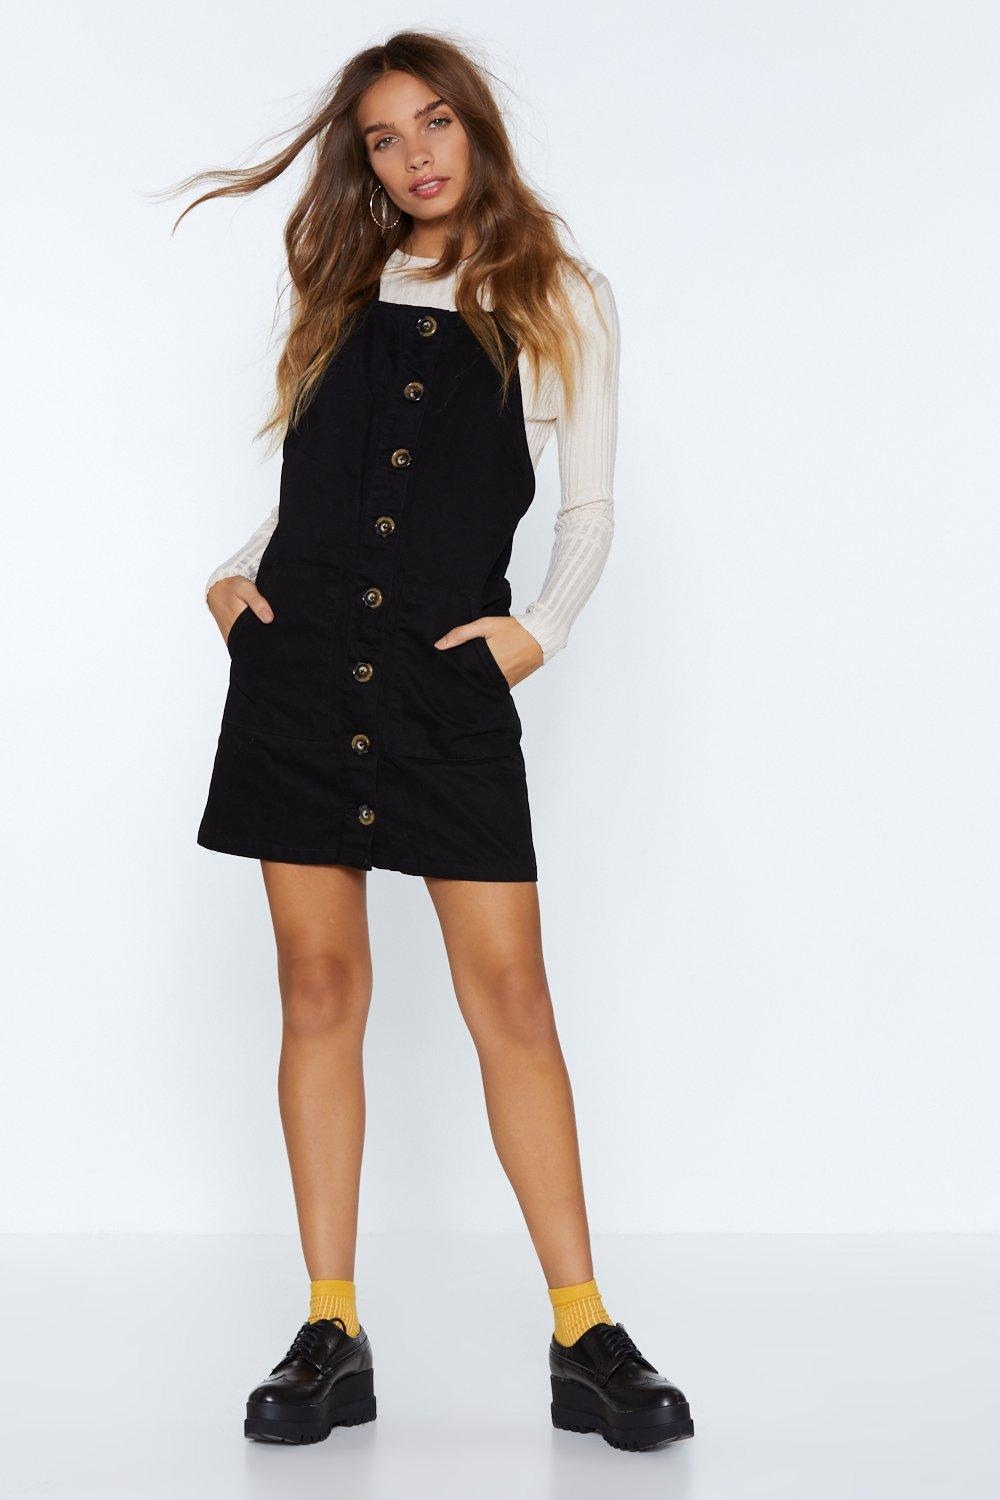 739d36f903d6 Hanging Button Your Every Word Pinafore Dress | Shop Clothes at ...